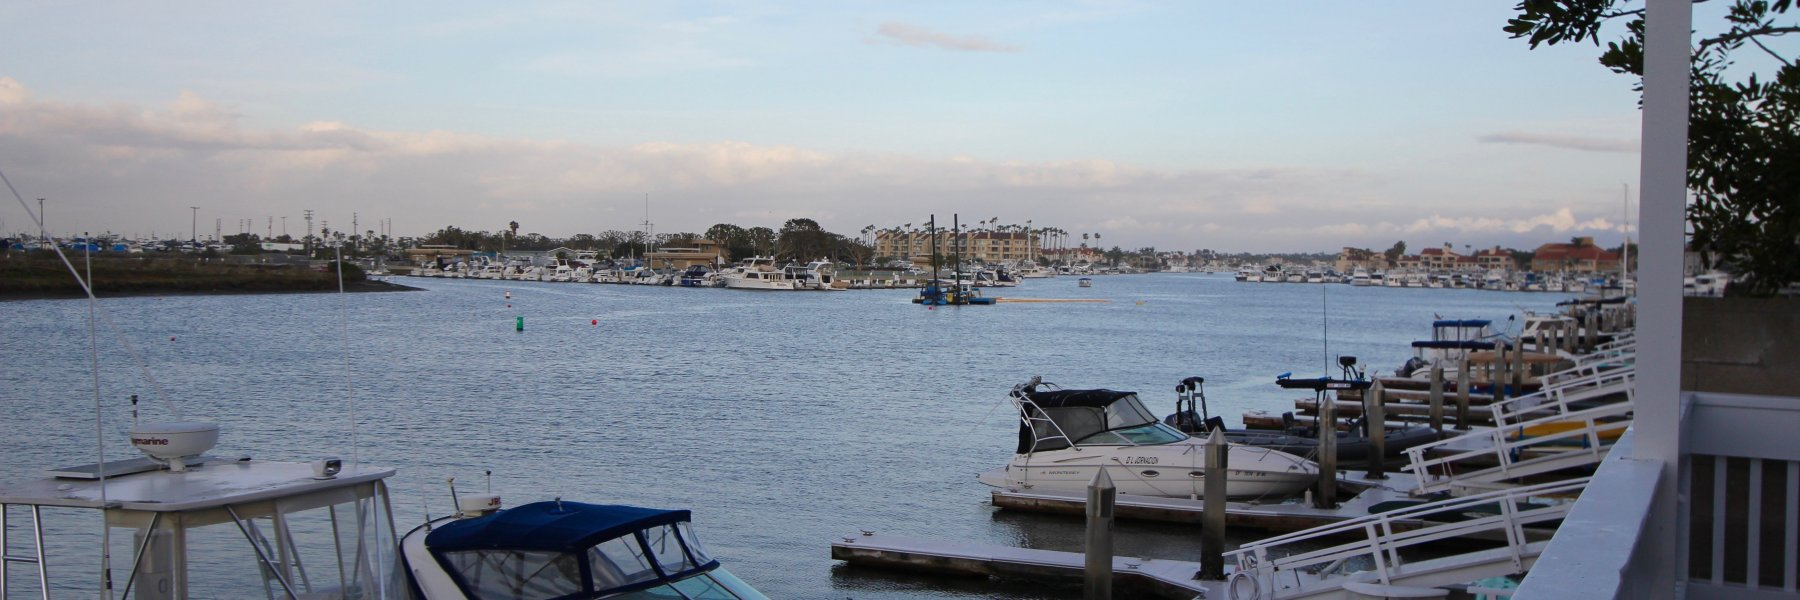 Huntington Marina is a community of homes in Huntington Beach California